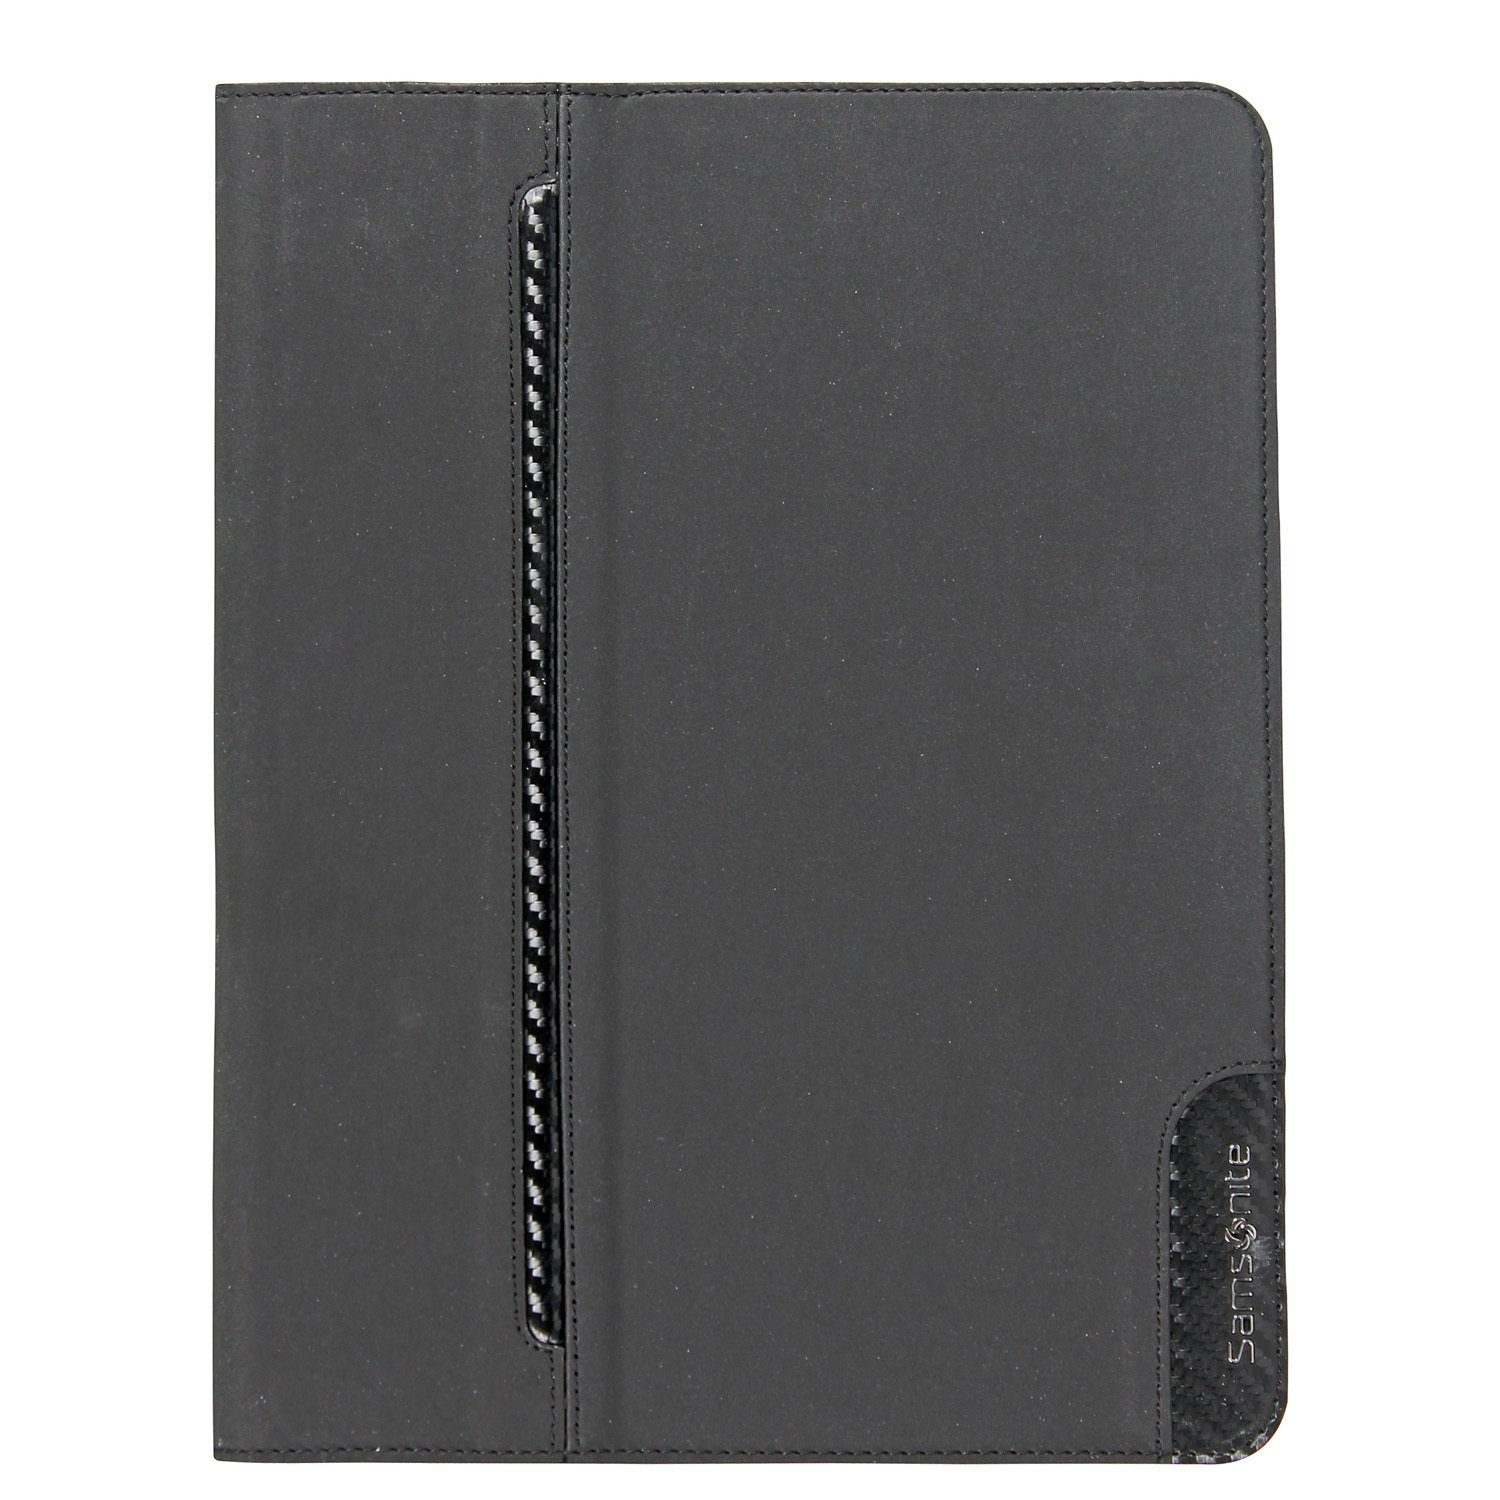 Samsonite Samsonite Tabzone IPad-Hülle Ultraslim Carbontech 20,4 cm